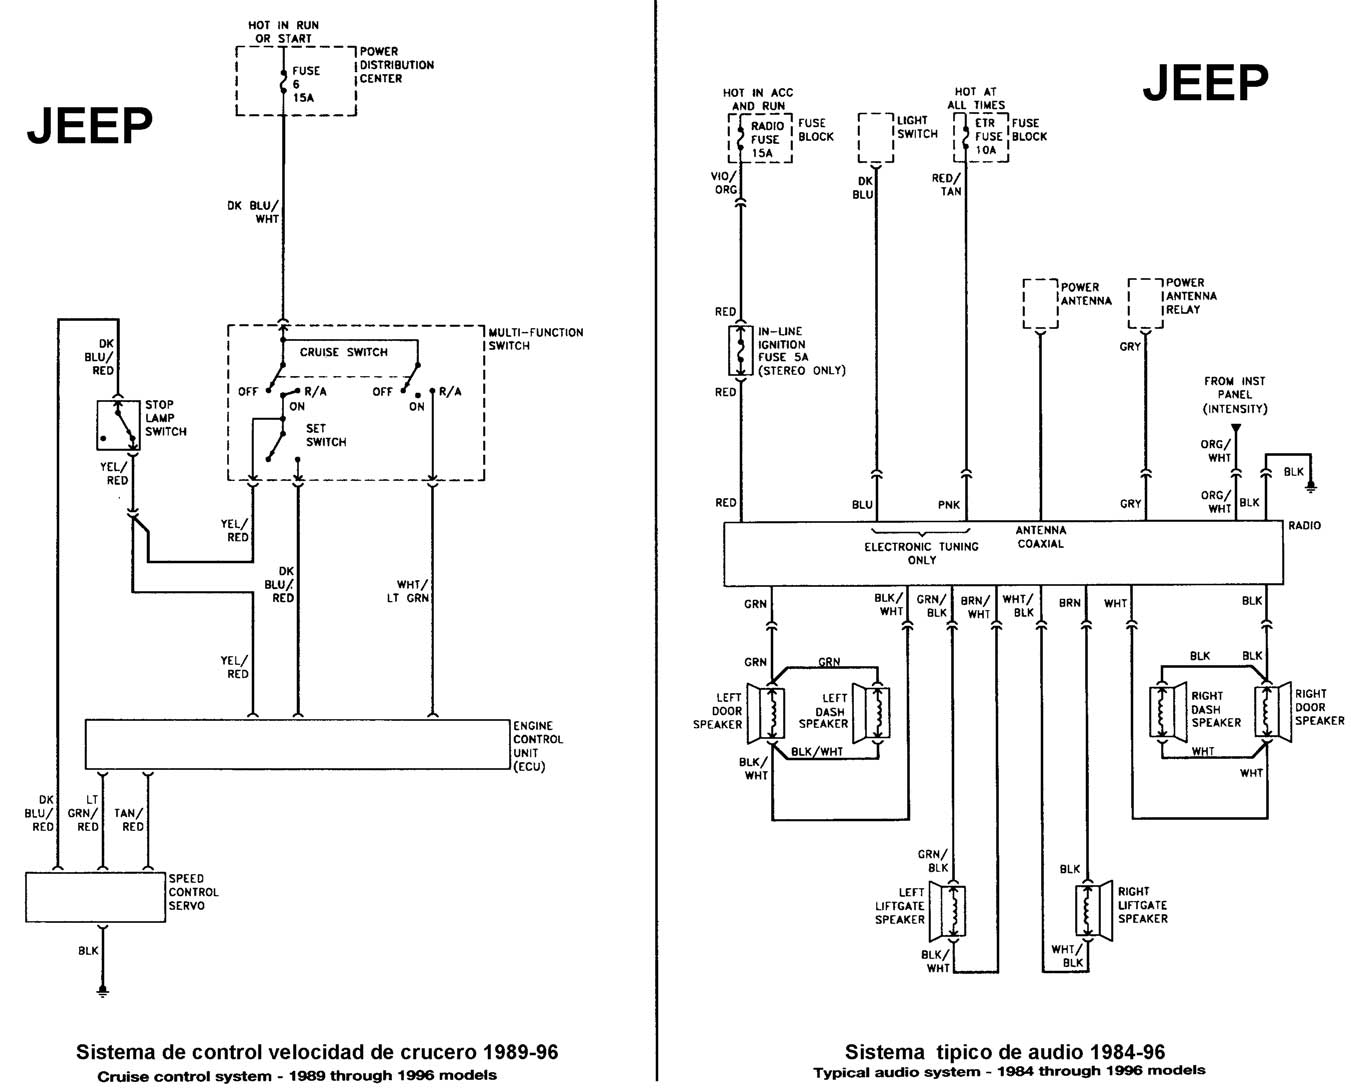 1987 Jeep Wrangler 4 2 Wiring Diagram